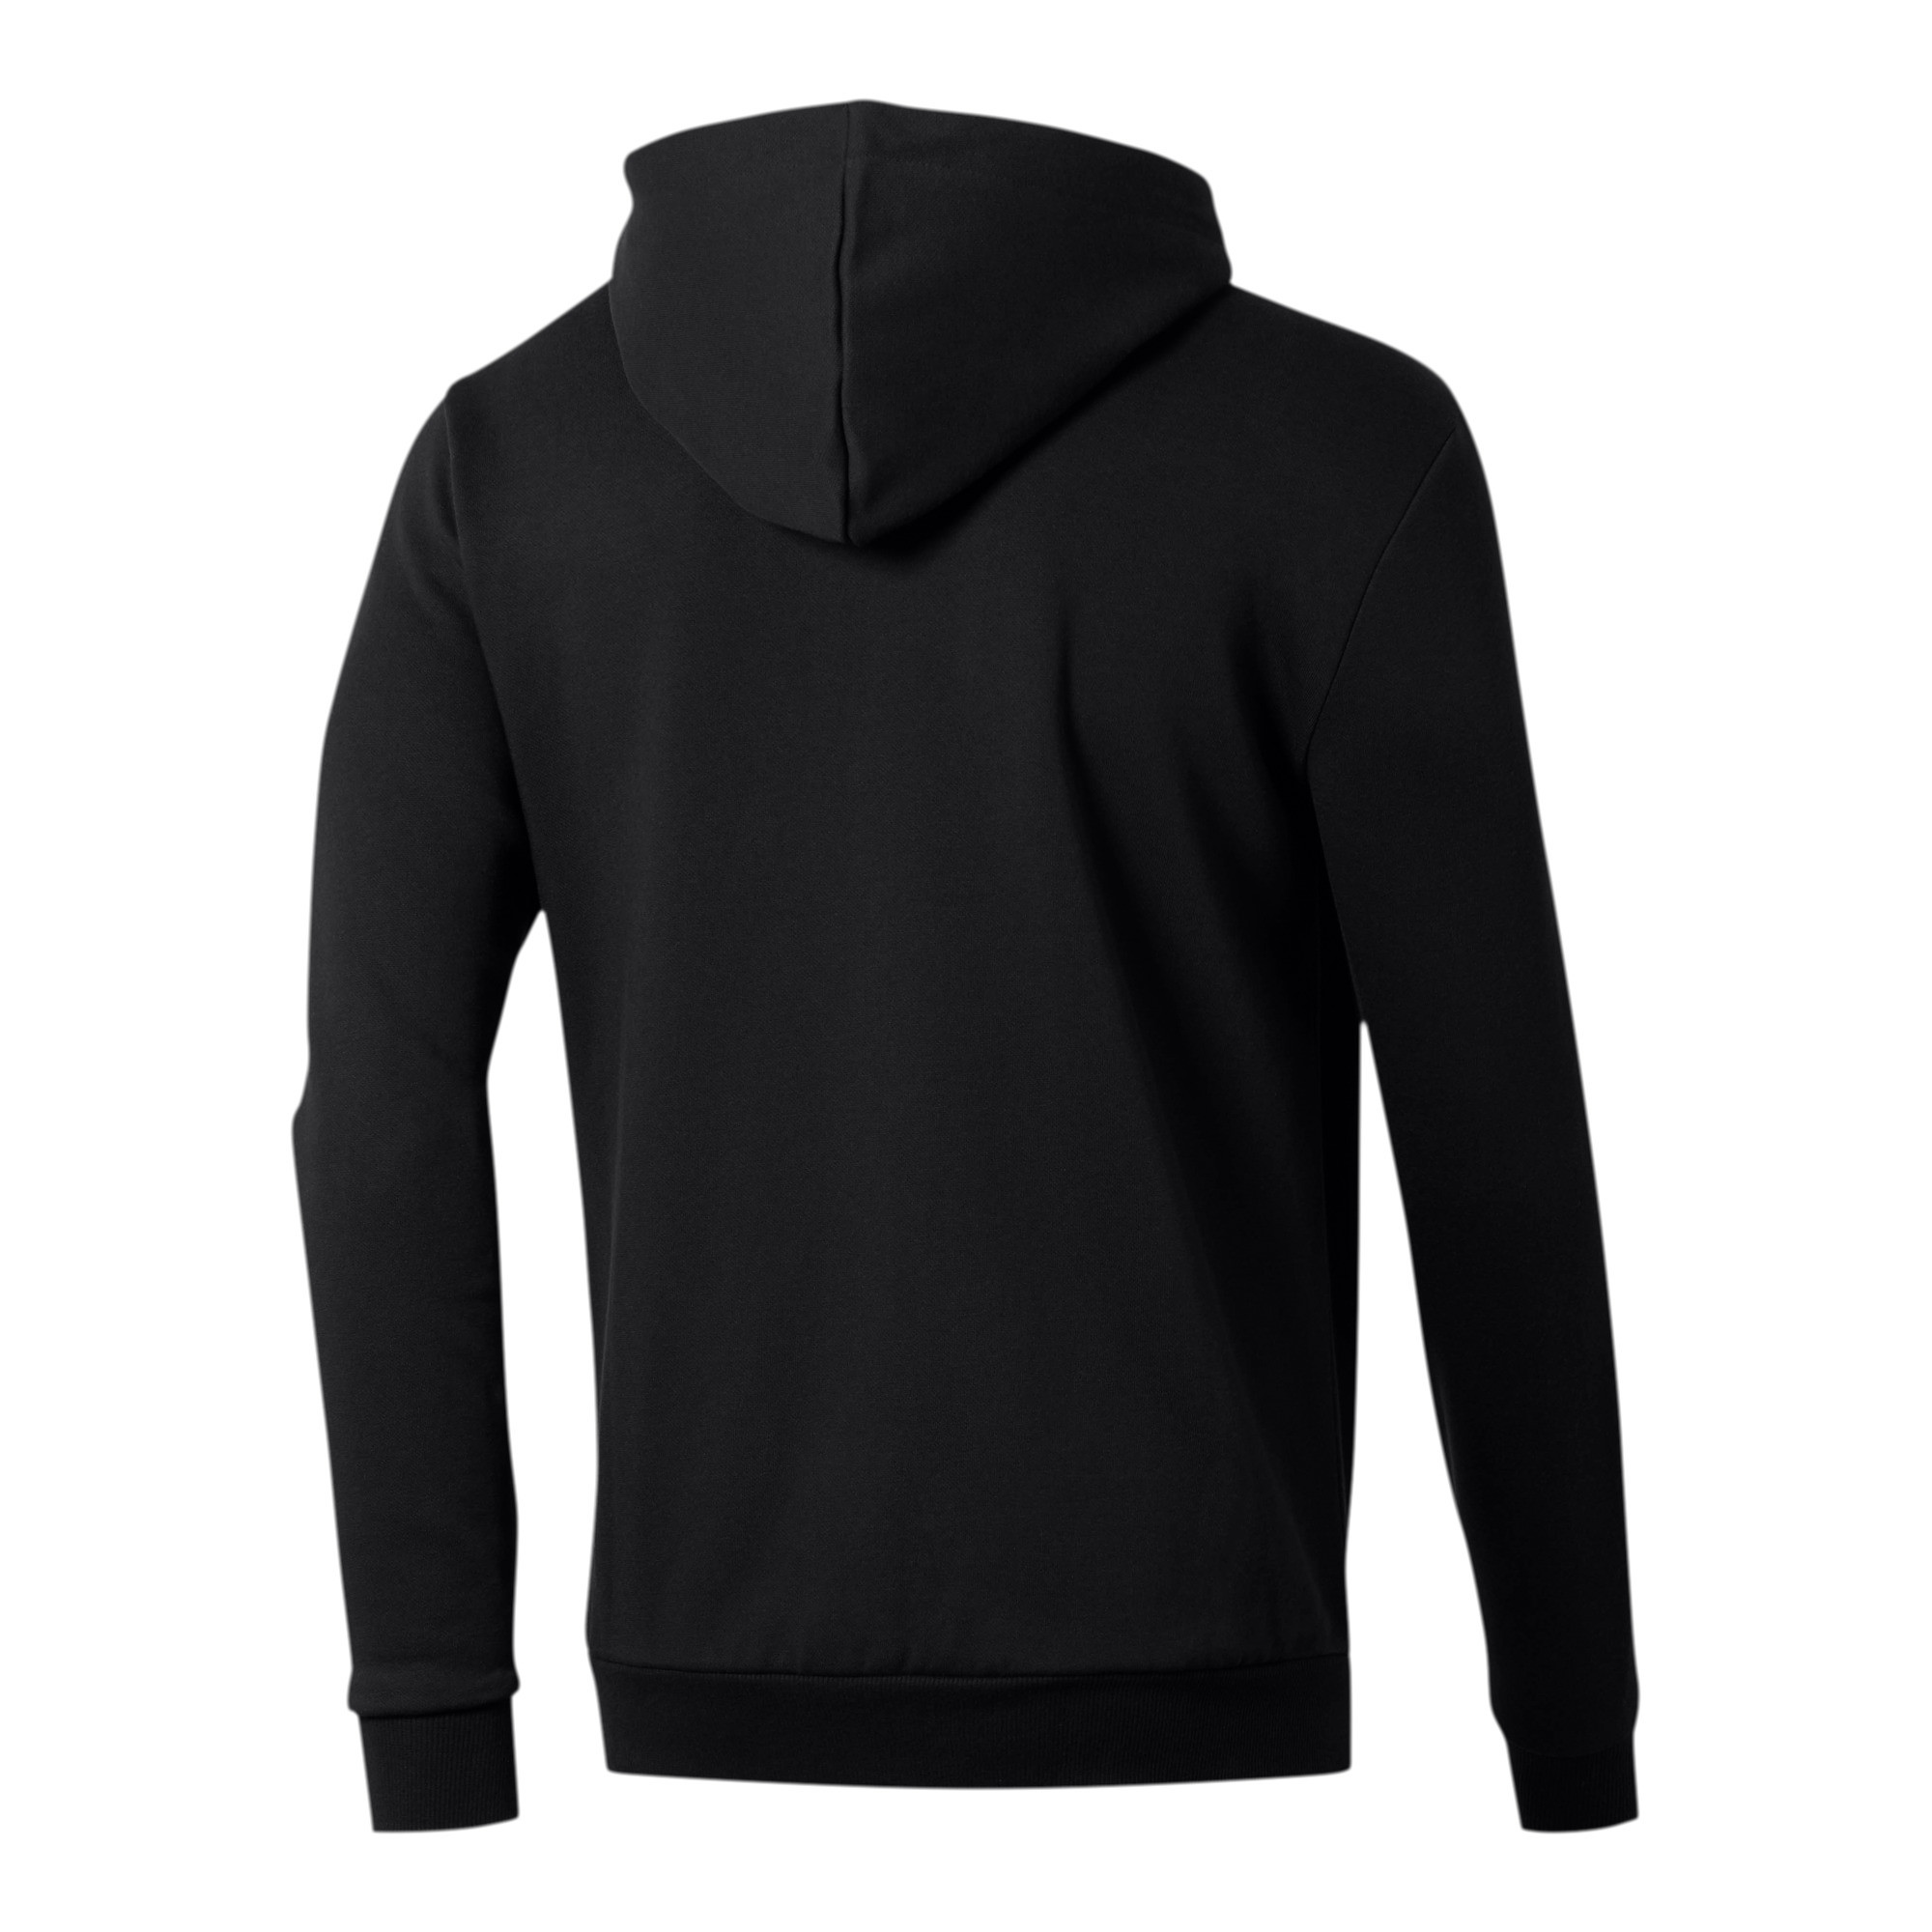 PUMA-Essentials-Men-039-s-Hooded-Fleece-Jacket-Men-Sweat-Basics thumbnail 17